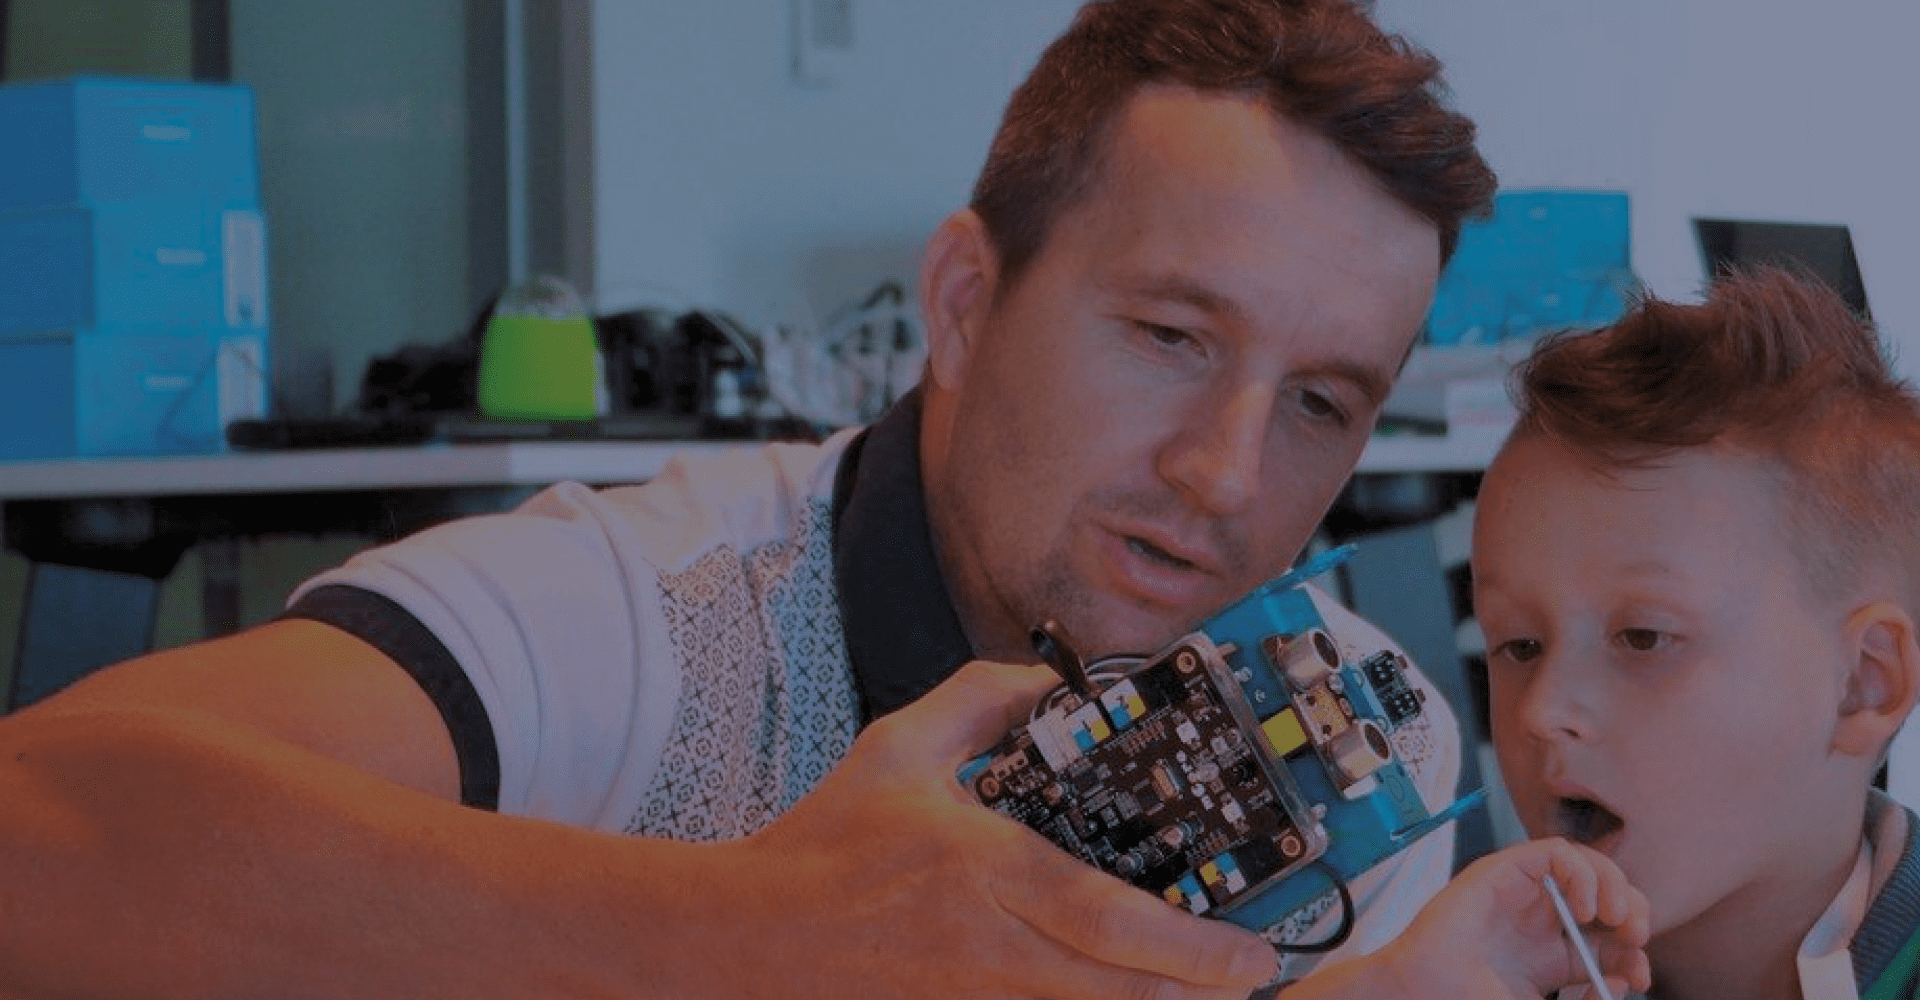 Educator showing robot with circuit board to rapt child